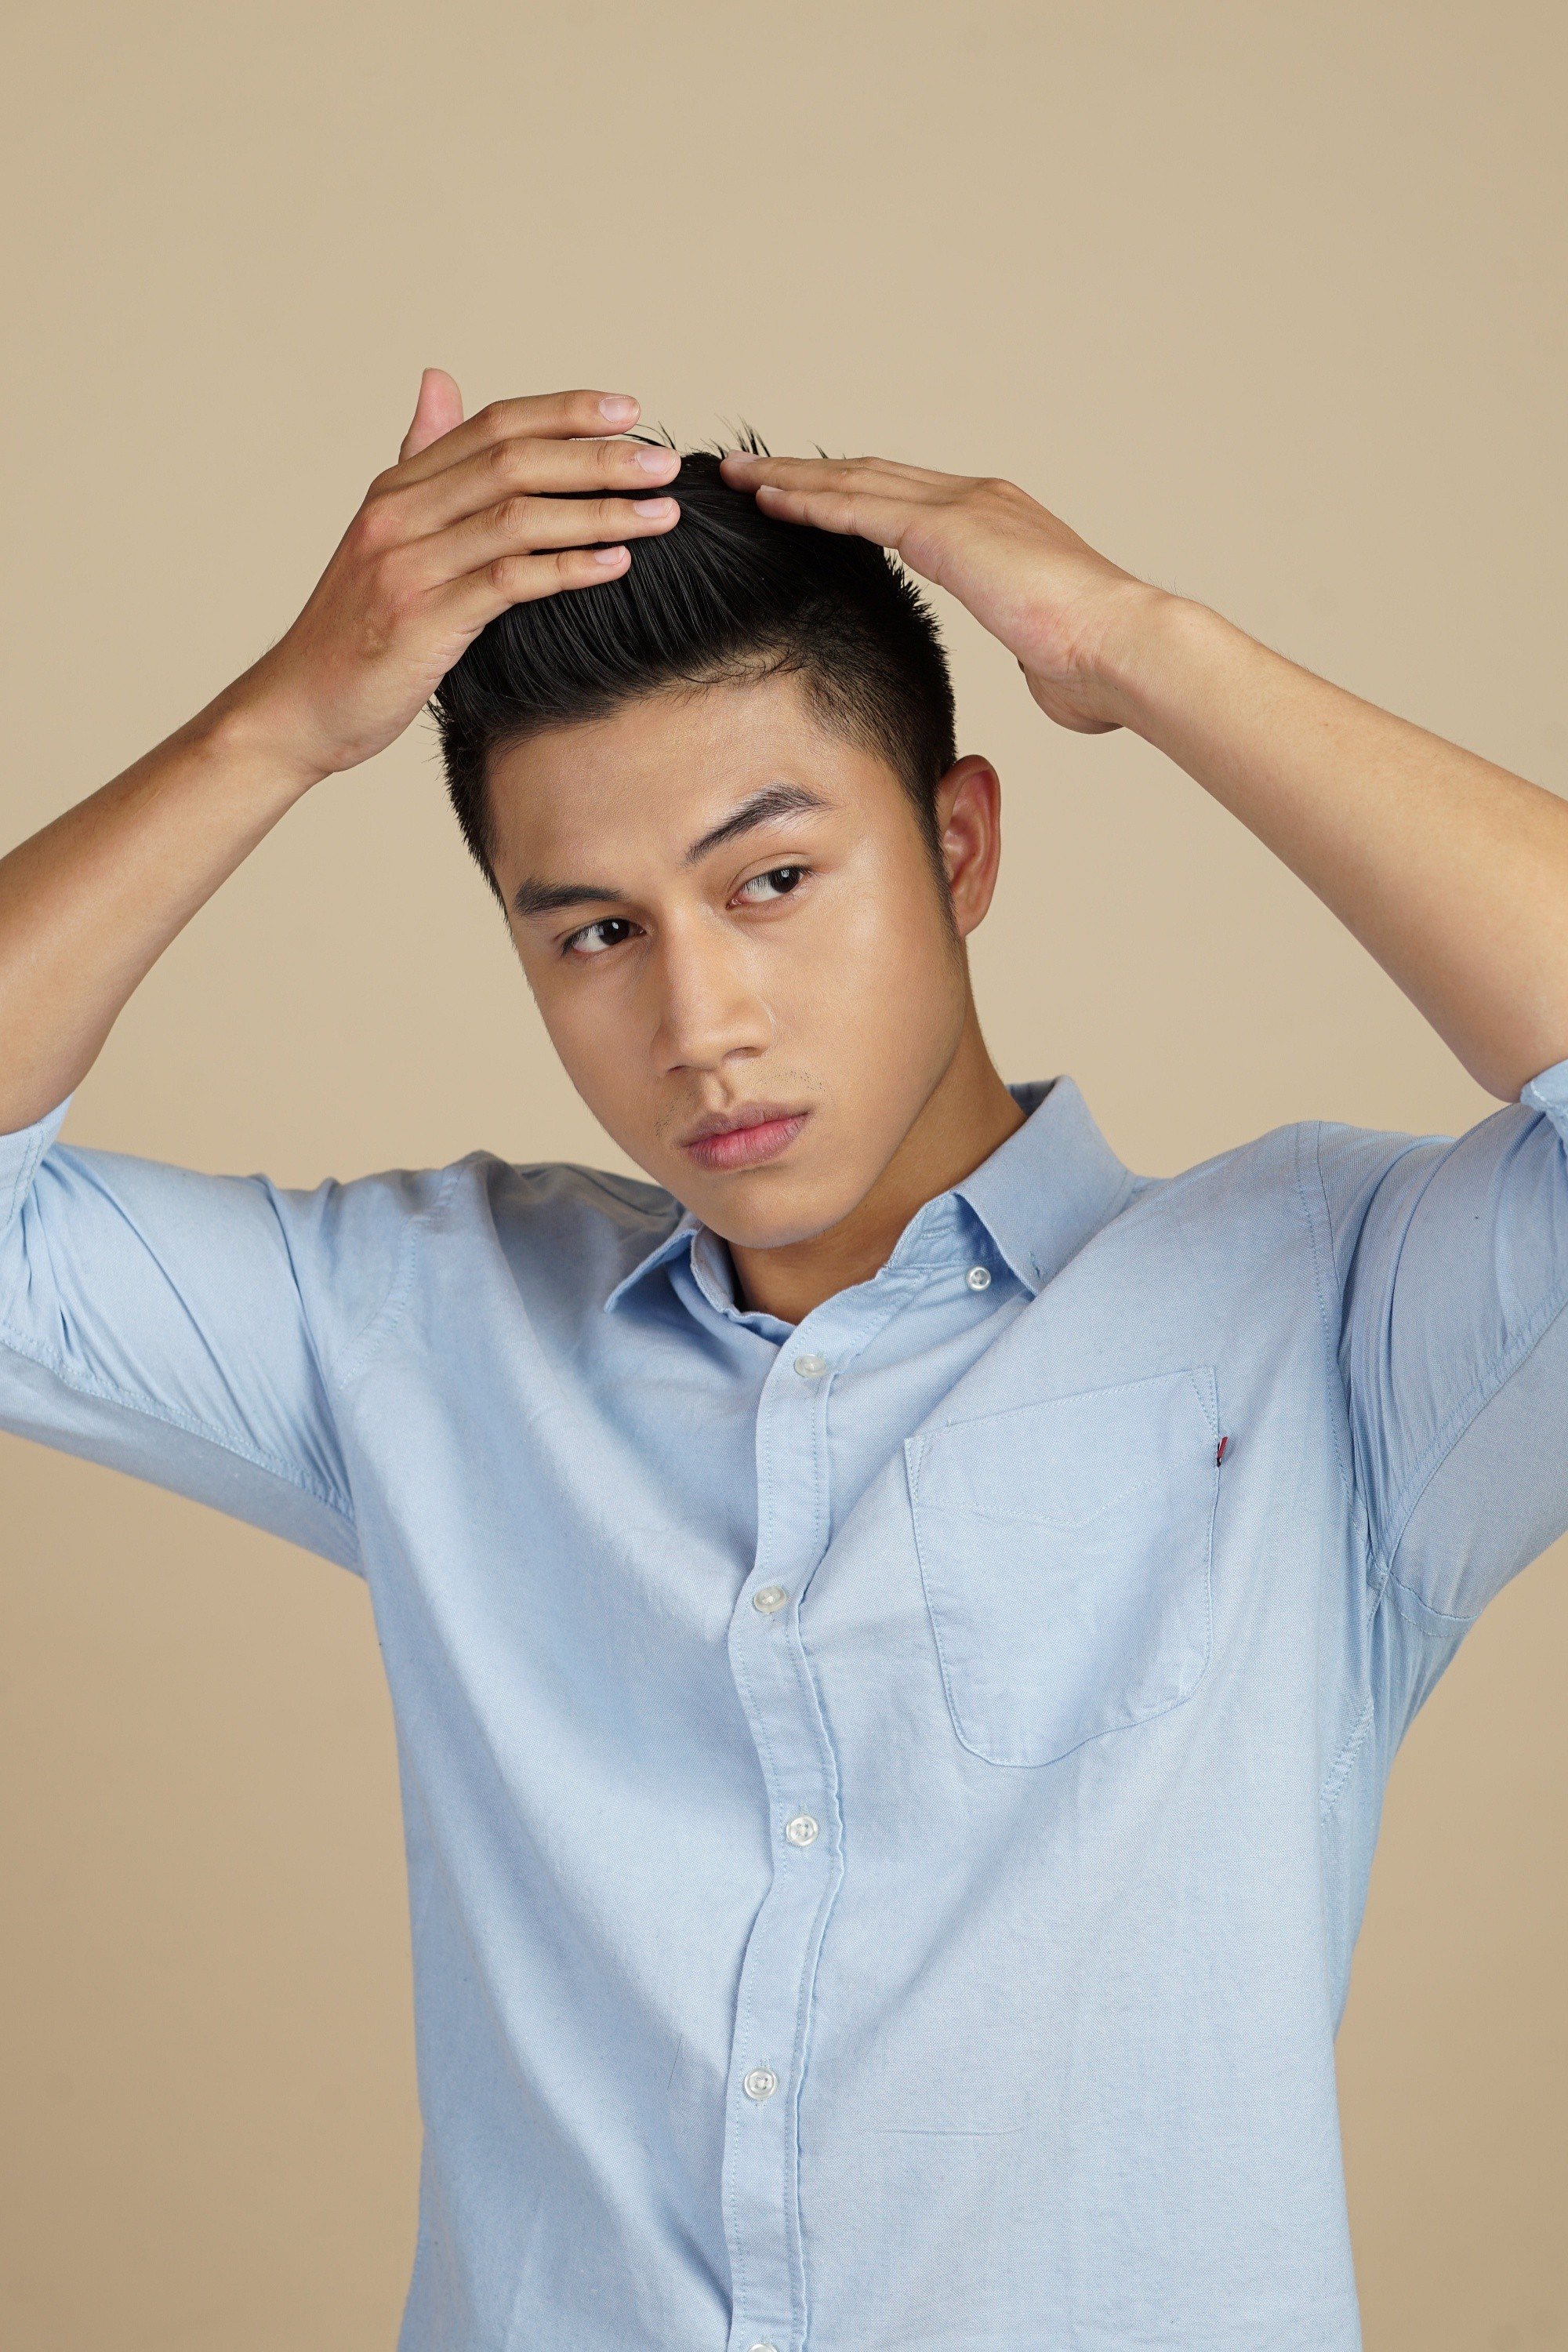 Itchy scalp: Asian man touching her short black hair and wearing a blue polo